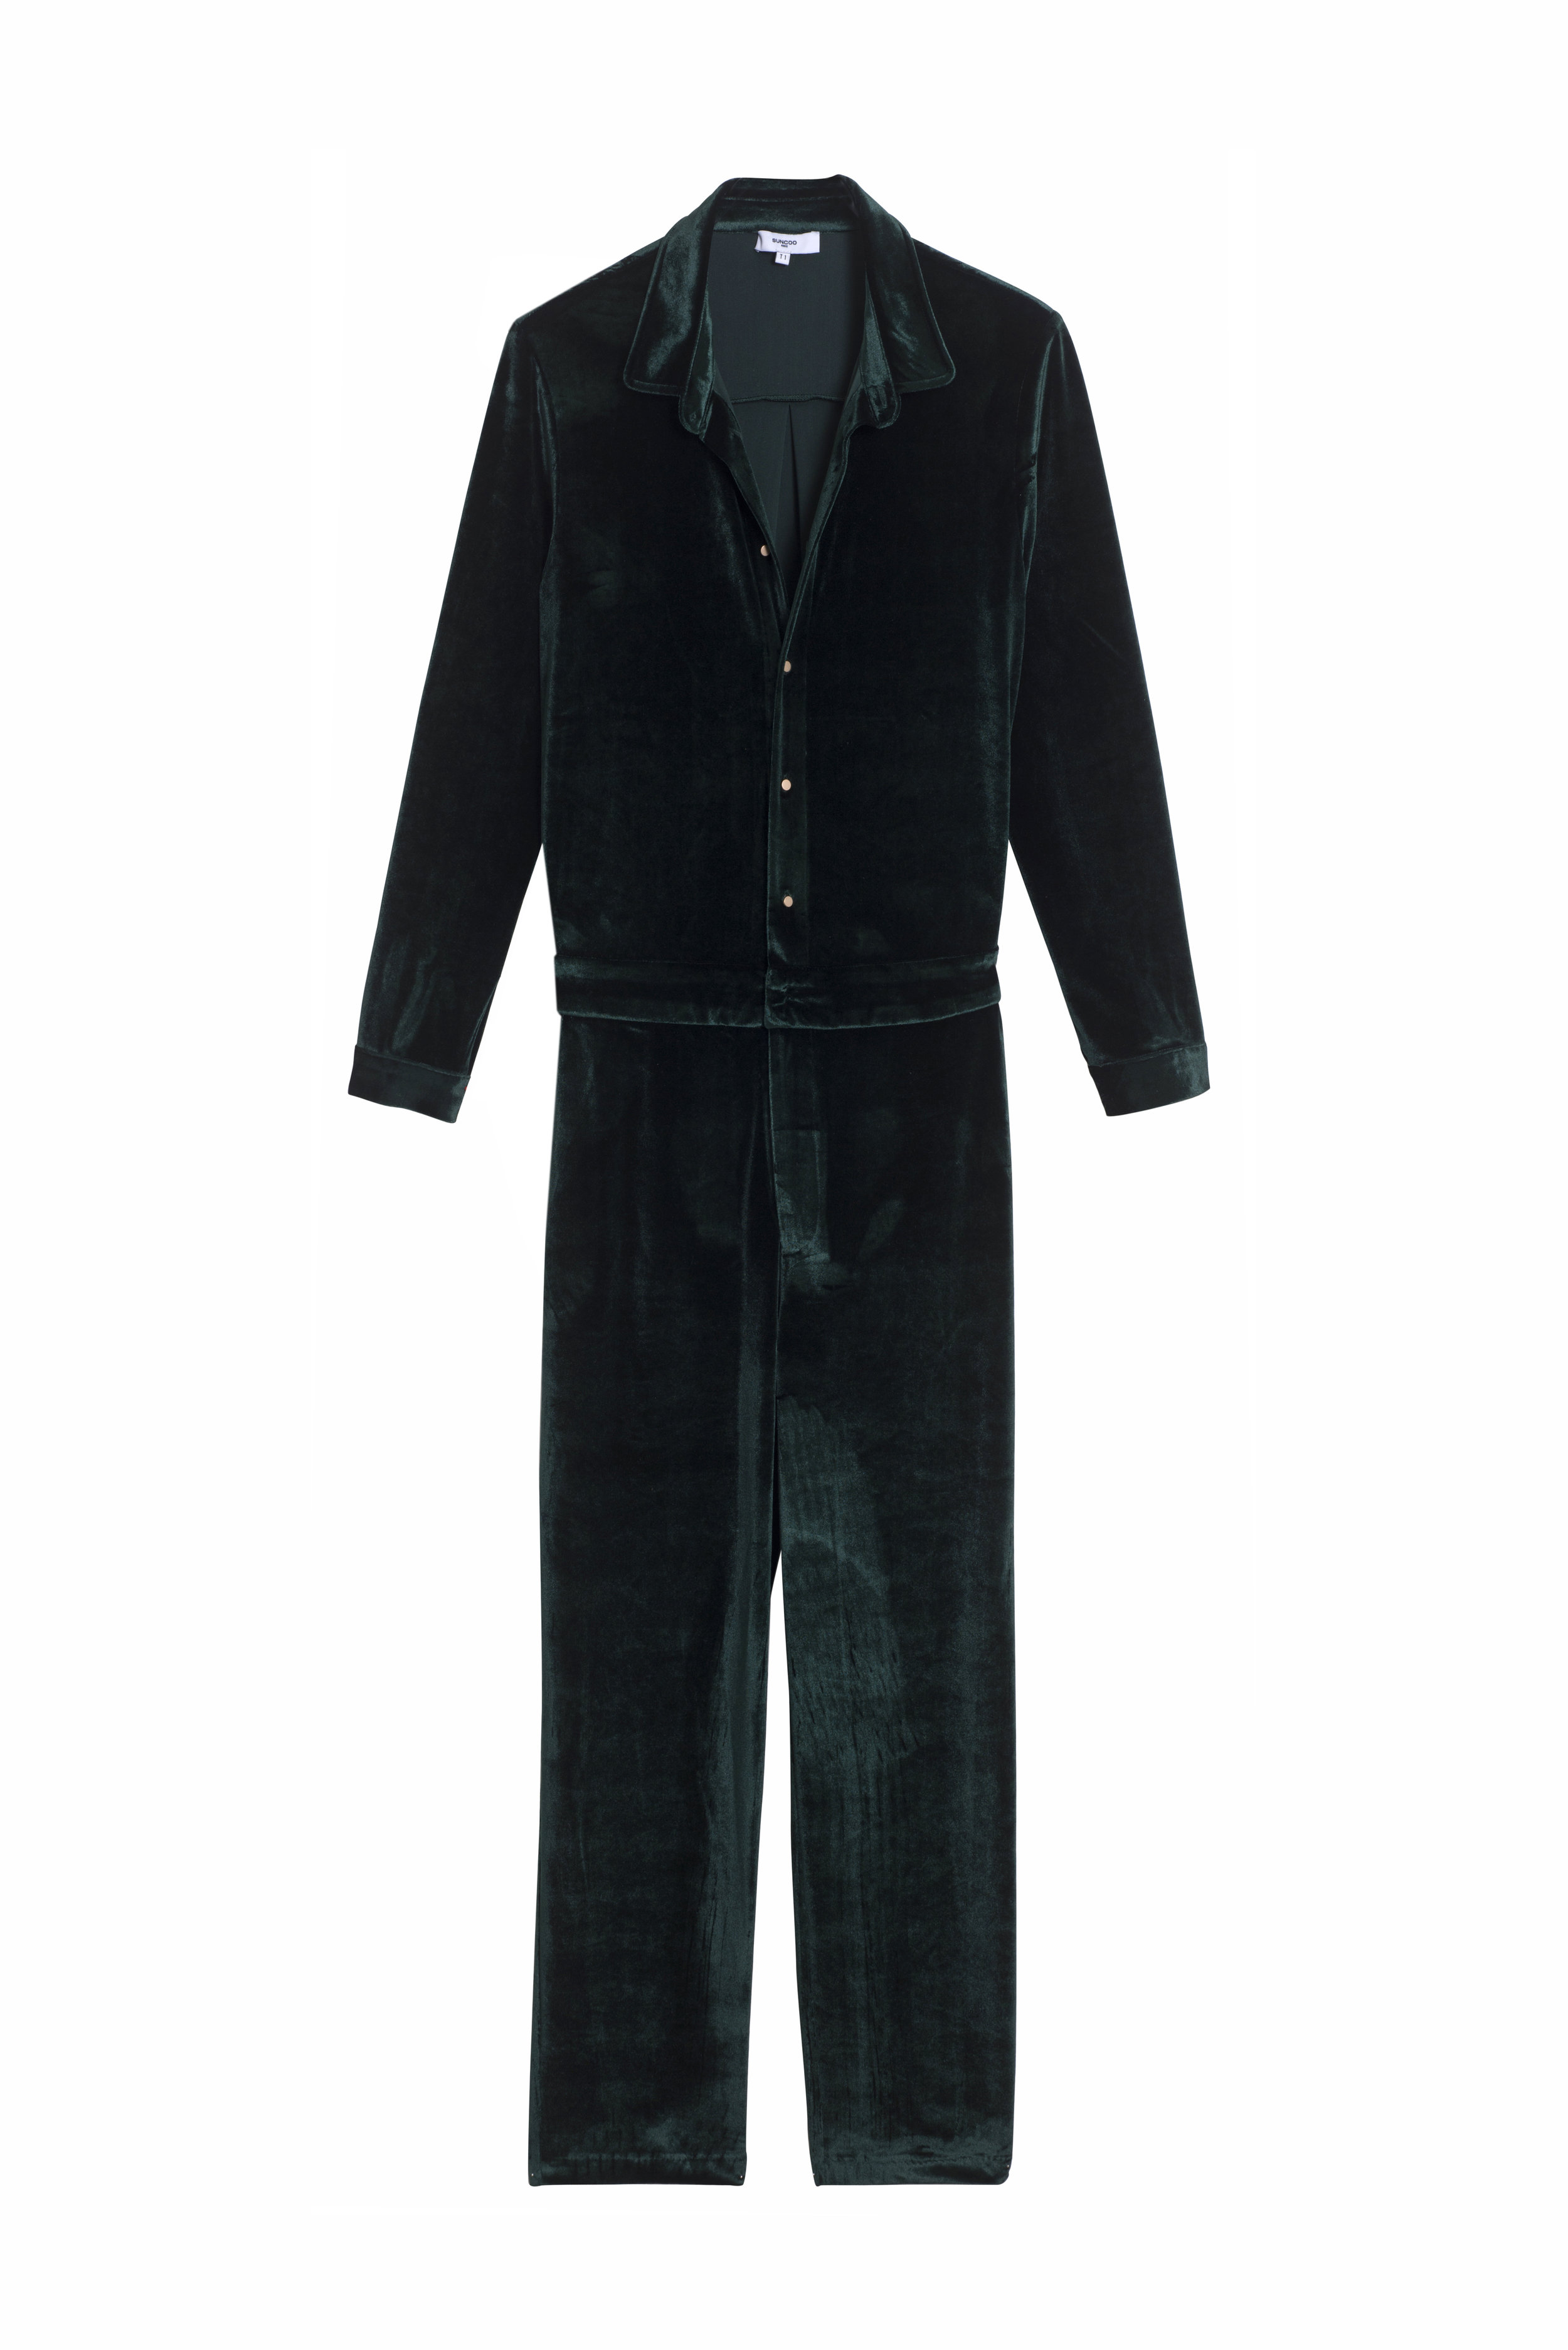 TOMMY Velvet Jumpsuit - This jewel-toned gem of a jumpsuit with delicate gold buttons elevates the baggy silhouette of a boiler suit from auto-shop mechanic to sartorially sharp.  Add your own feminine flair with a pair of heels or a bold lip.